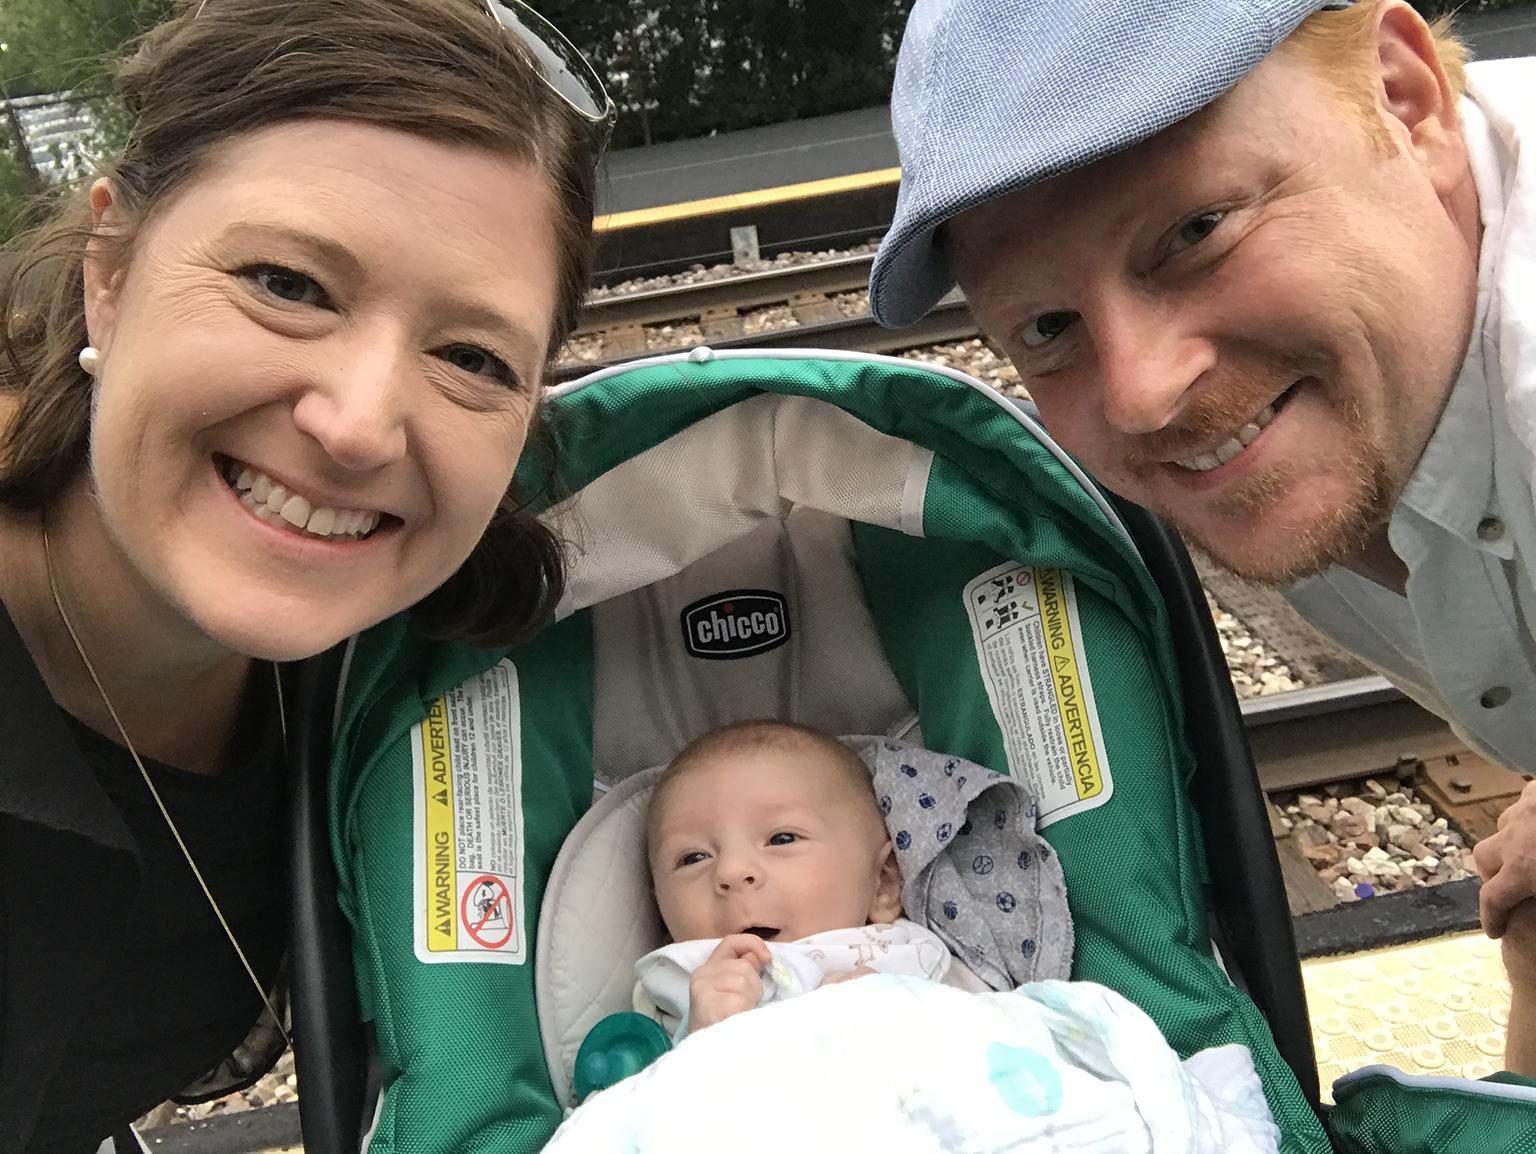 Genevieve and Darren Coady with their son, Oliver. (Courtesy Genevieve Coady)